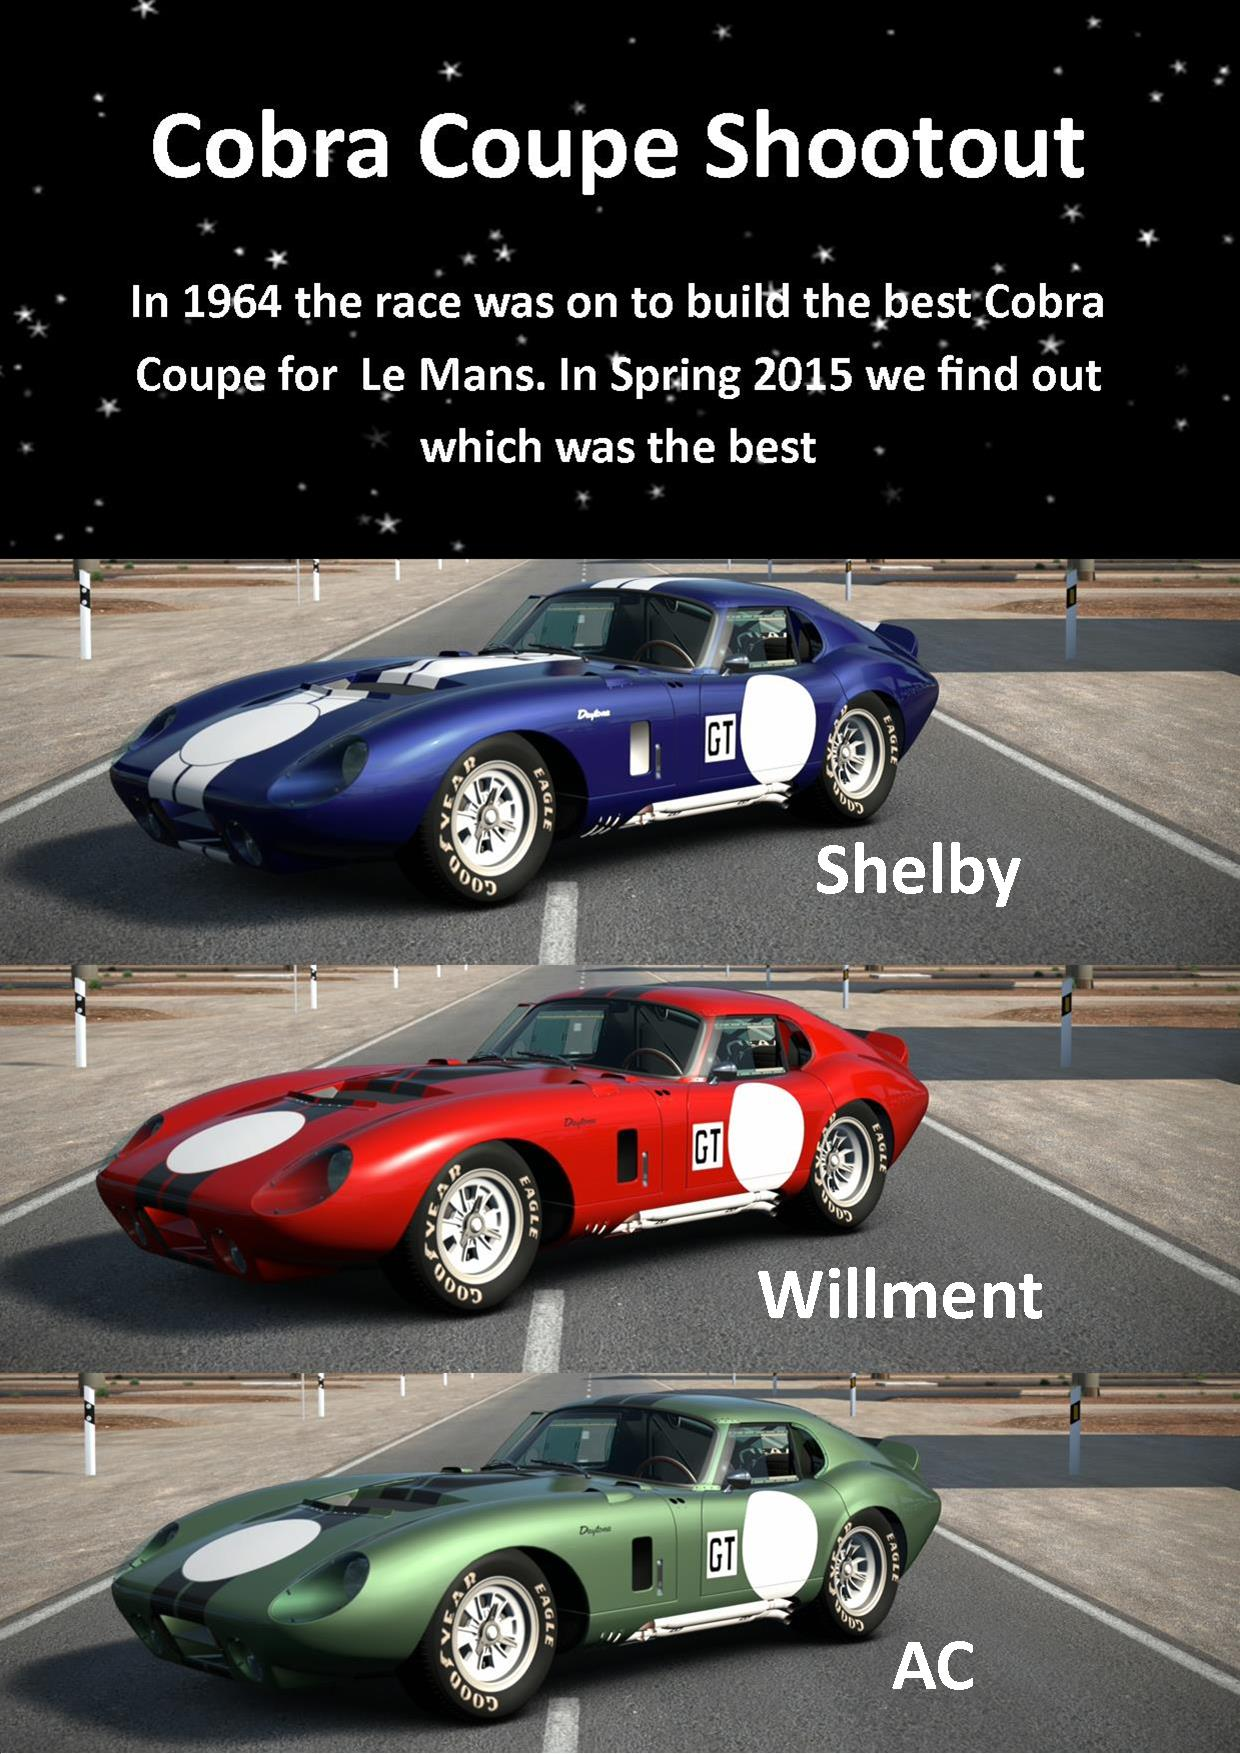 Cobra Coupe Shootout Poster.jpg